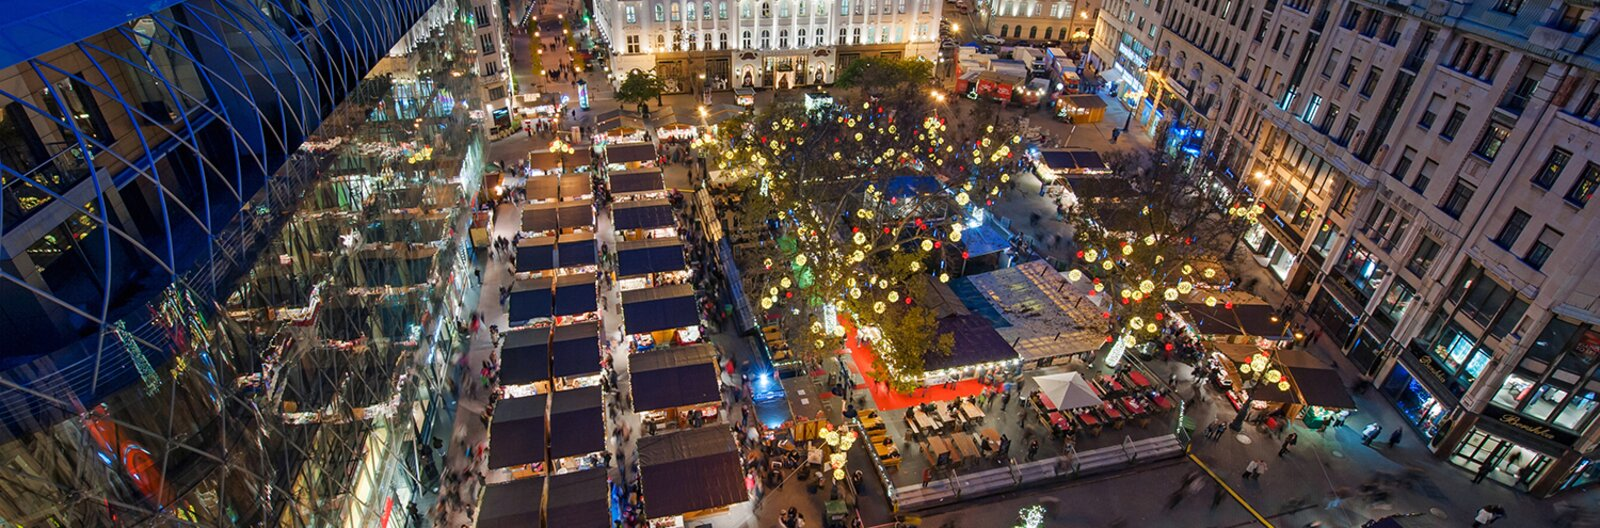 8 classic Christmas markets of downtown Budapest in 2015